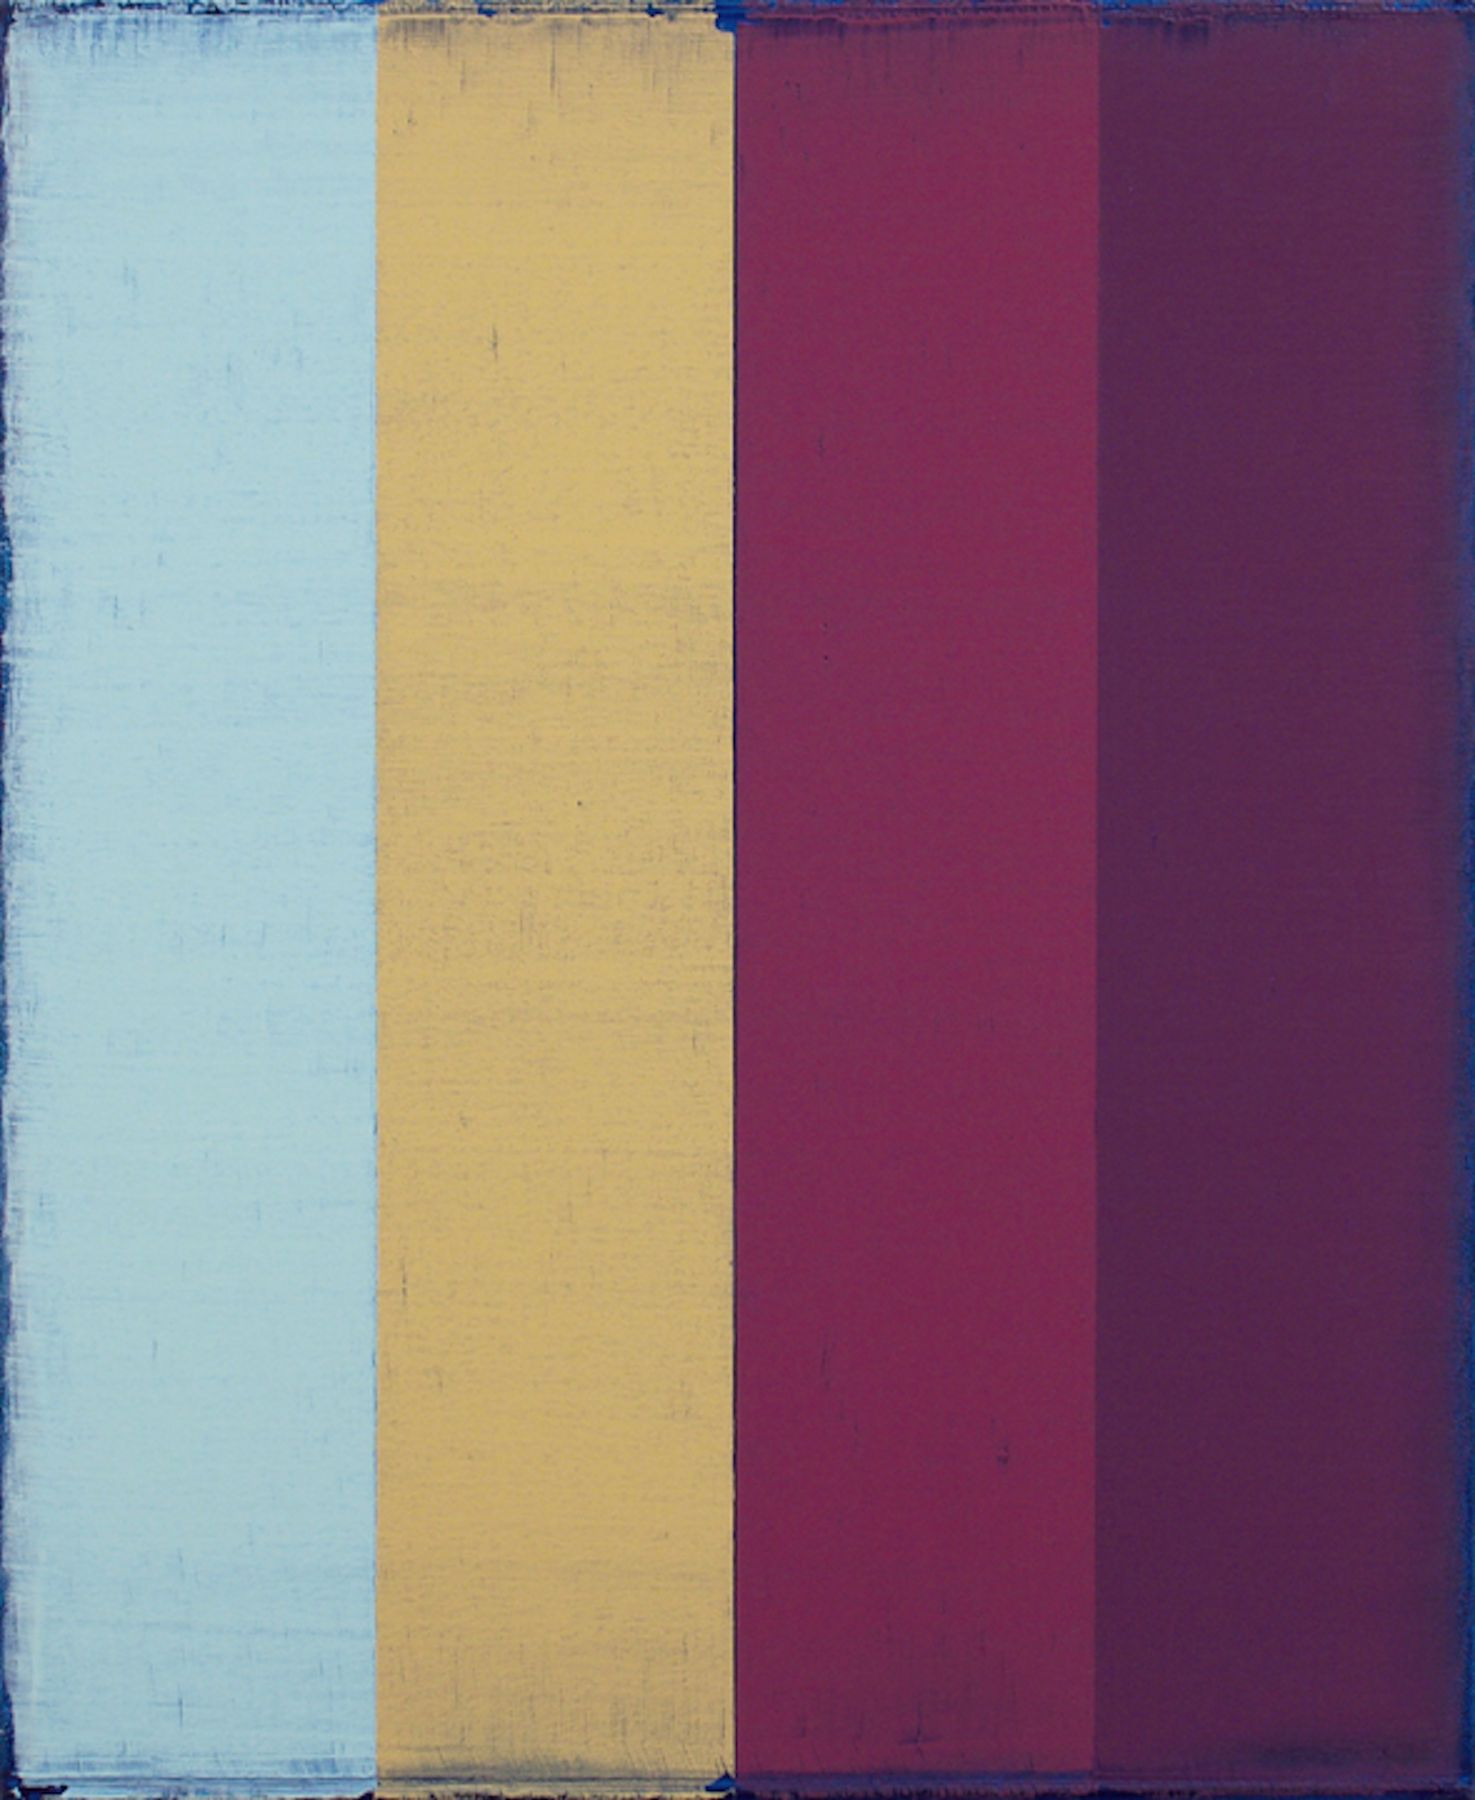 Steven Alexander, Arcade 4, 2017, Oil and acrylic on canvas, 22 x 18 inches, Signed and titled on the verso, Vertical rectangles in light blue, yellow, pink and purple with rough navy blue edges, Steven Alexander is an American artist who makes abstract paintings characterized by luminous color, sensuous surfaces and iconic configurations.